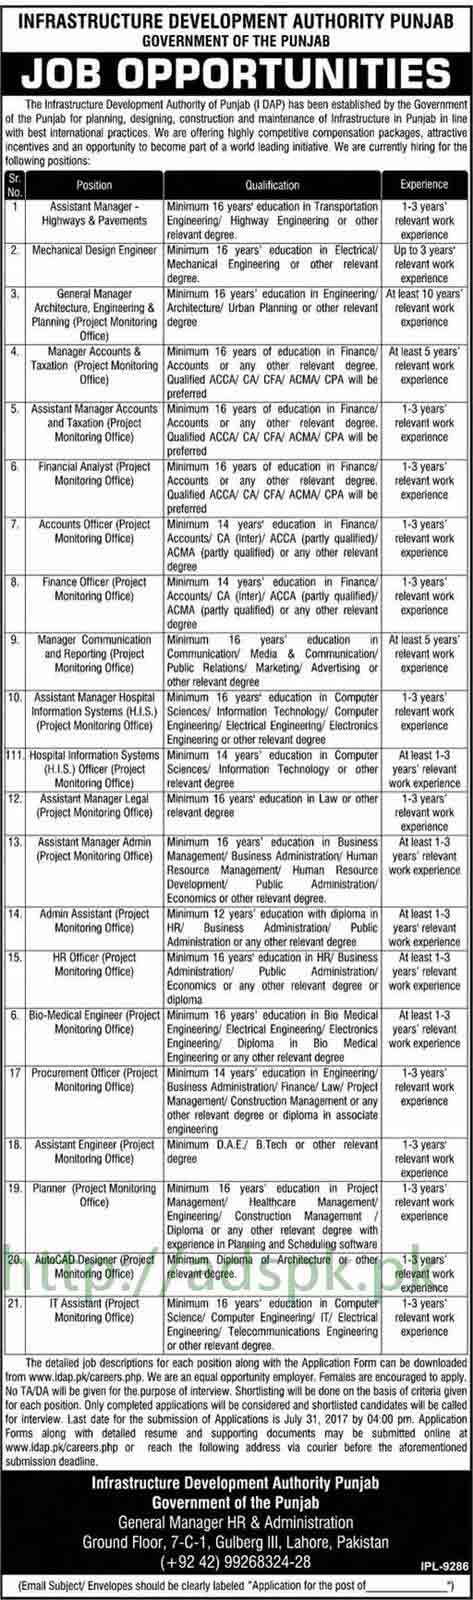 IDAP Jobs Infrastructure Development Authority Punjab Govt. Jobs 2017 for Assistant Manager Highways & Pavements Mechanical Design Engineer General Manager Accounts Taxation Manager Assistant Manager Accounts Officer and Other Staff Jobs Application Deadline 31-07-2017 Apply Now